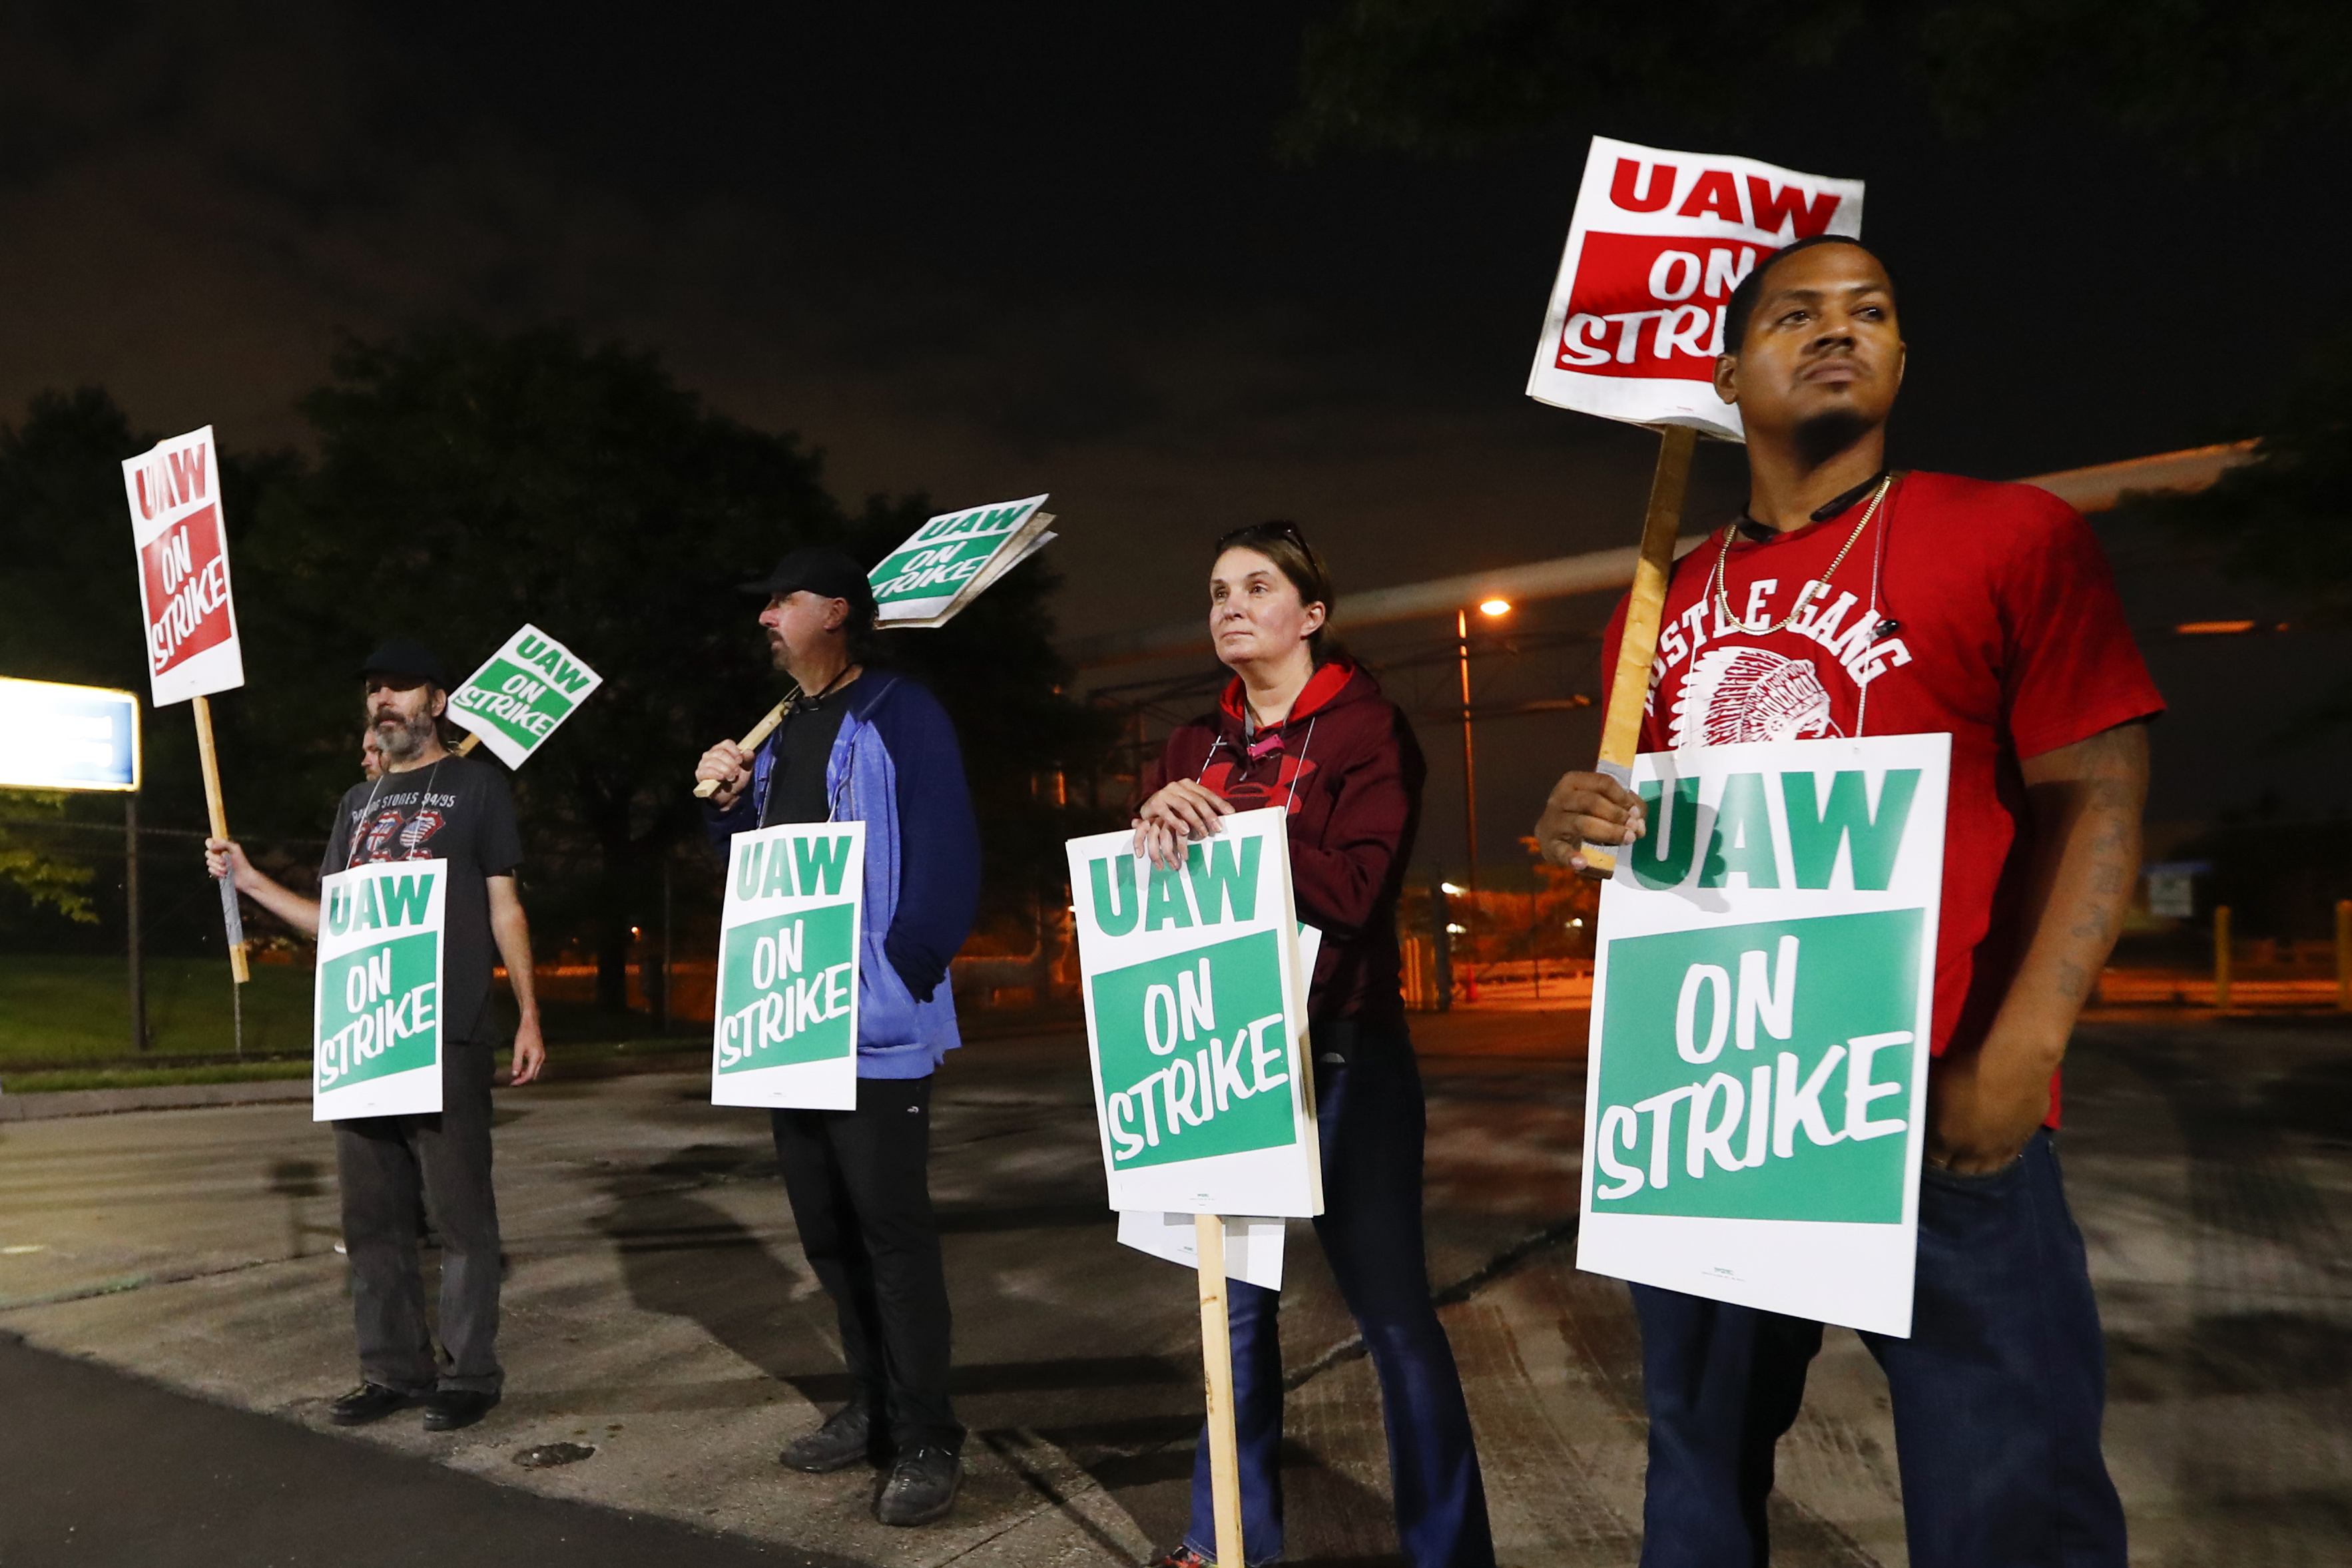 United Auto Workers members picket outside the General Motors assembly plant in Hamtramck, Mich., on Monday.